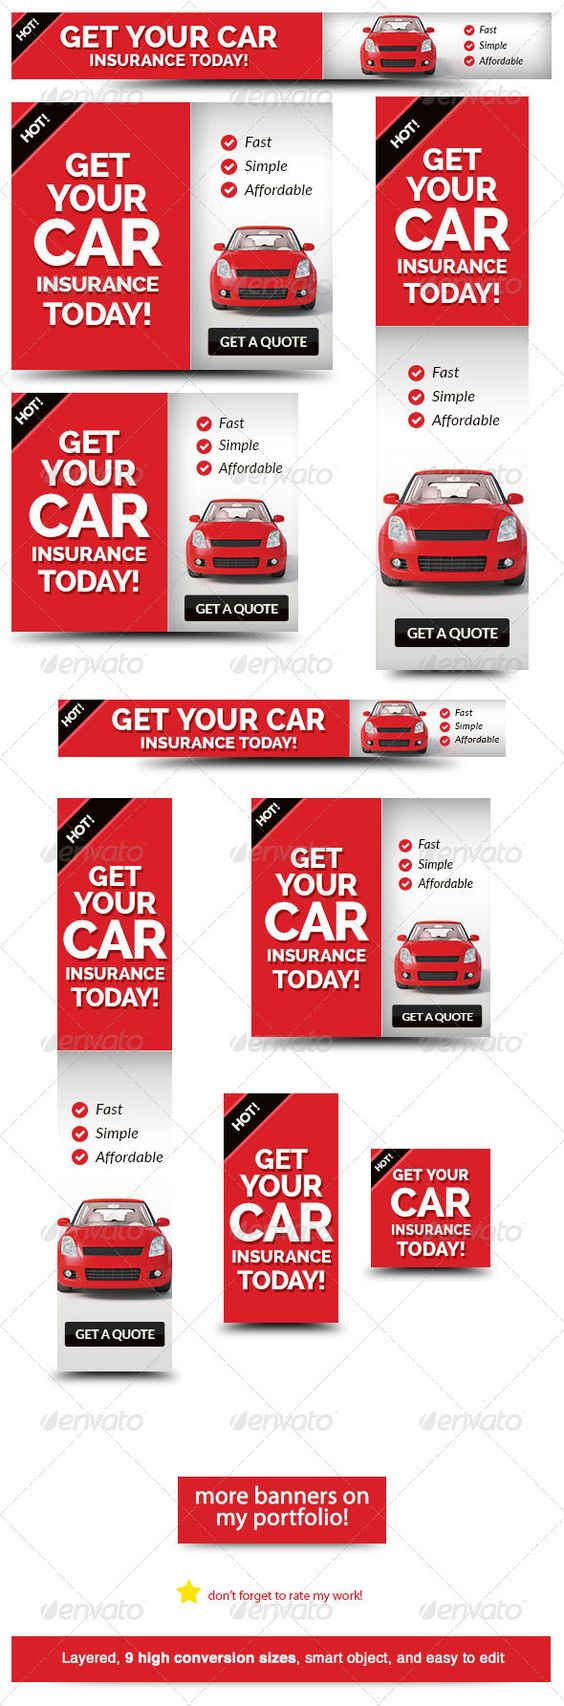 how to buy advertising car